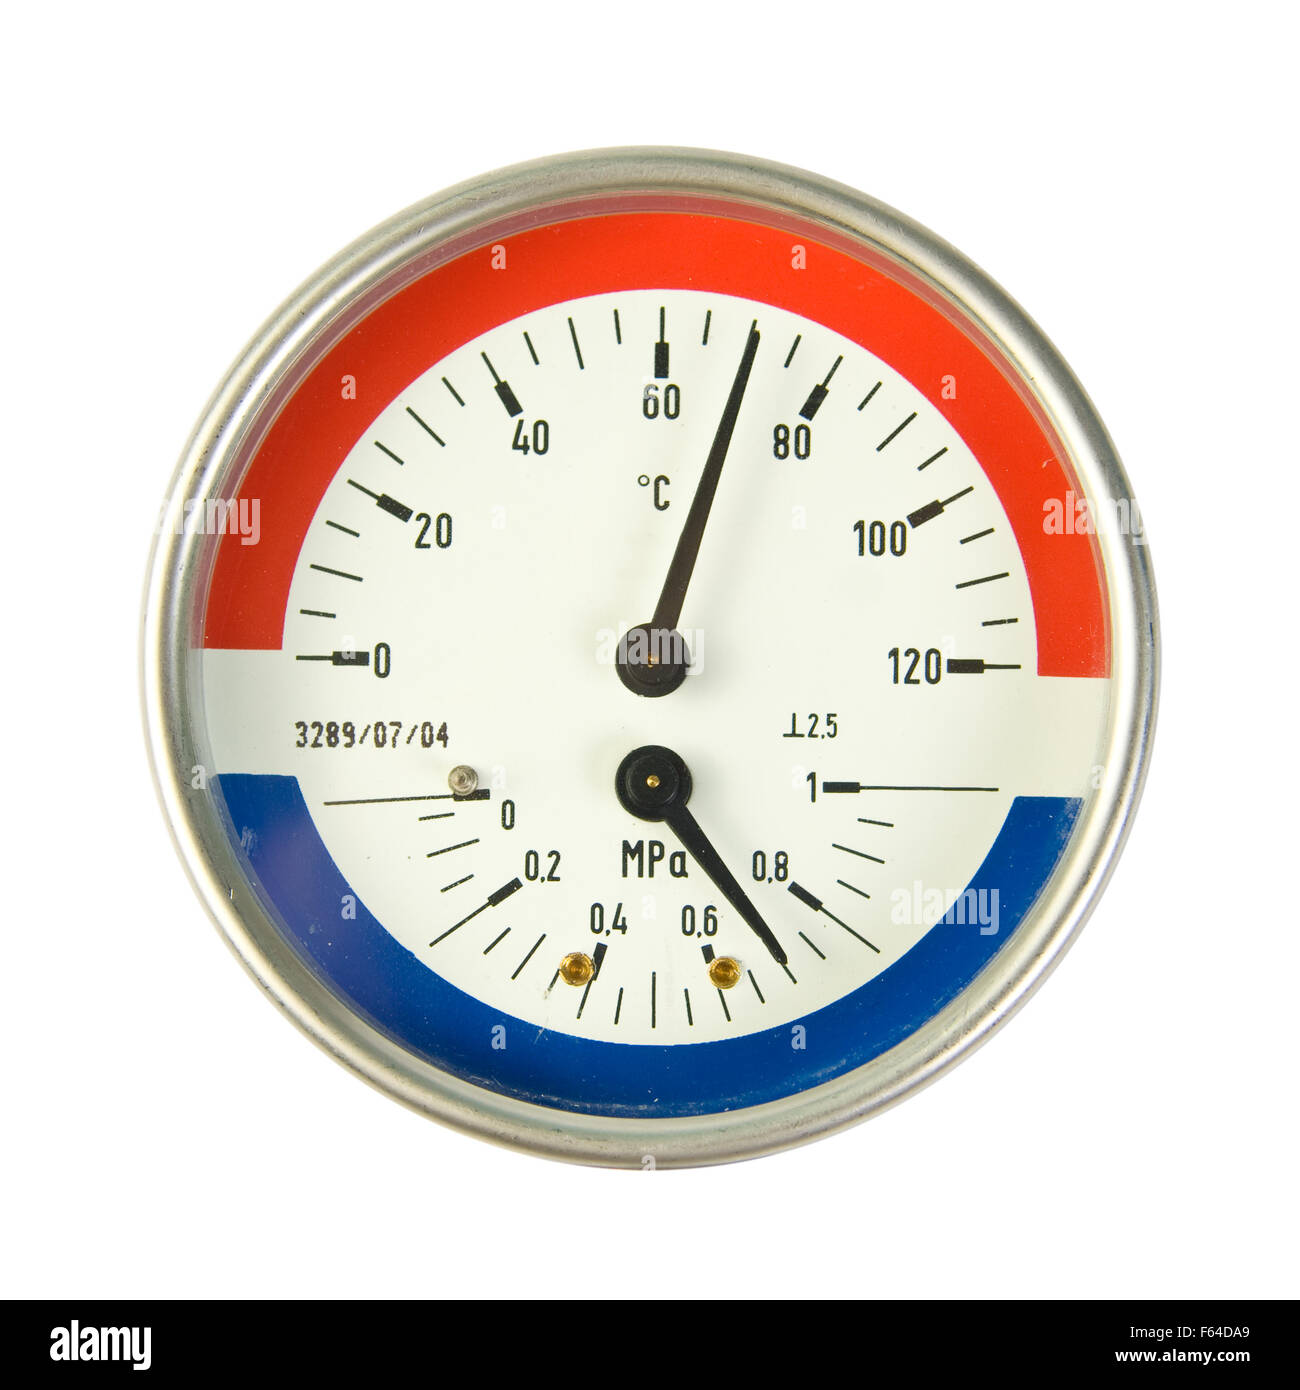 Temperature and pressure meter. Isolated on white - Stock Image